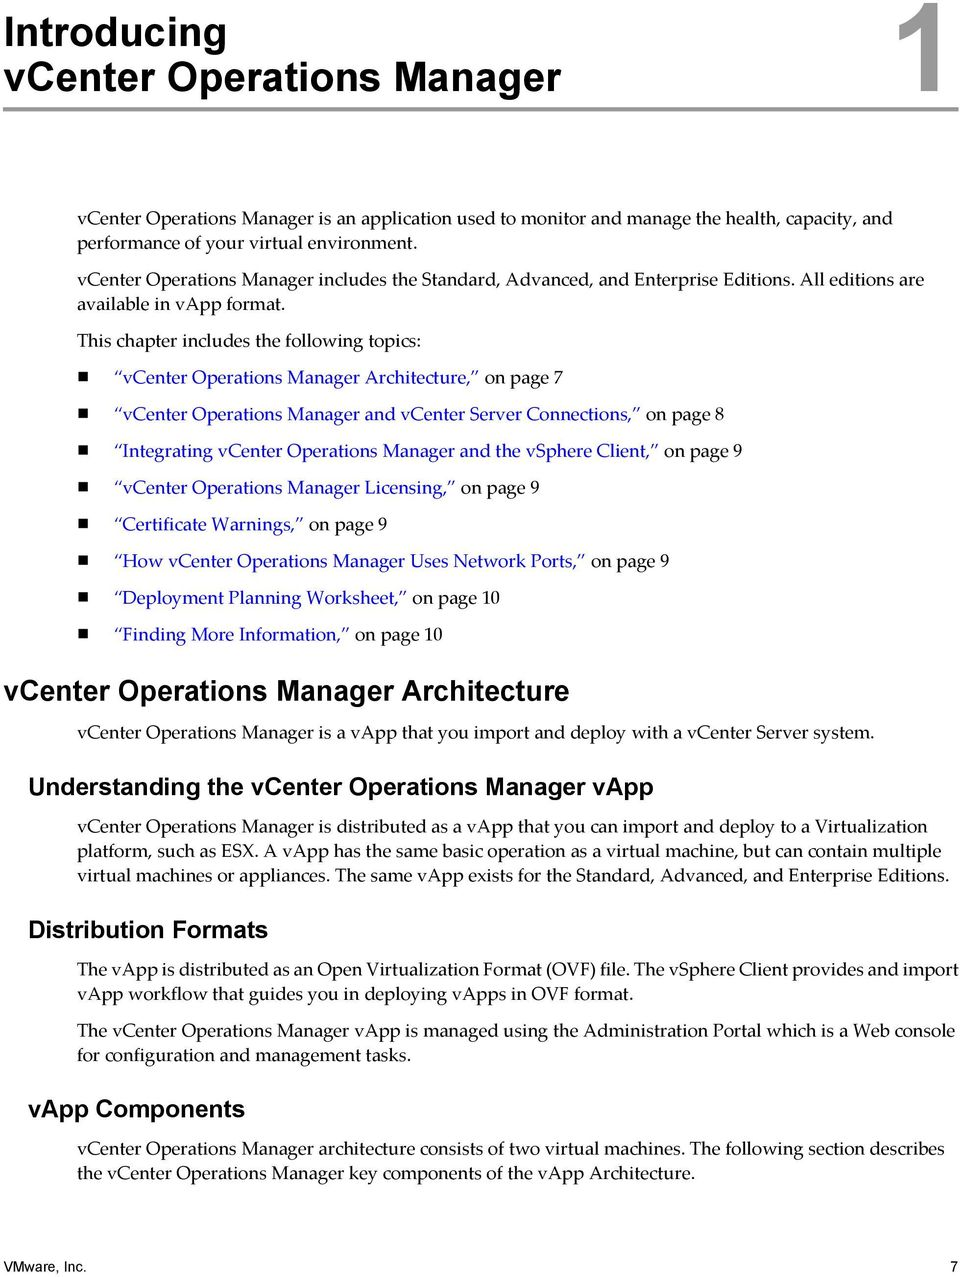 This chapter includes the following topics: vcenter Operations Manager Architecture, on page 7 vcenter Operations Manager and vcenter Server Connections, on page 8 Integrating vcenter Operations